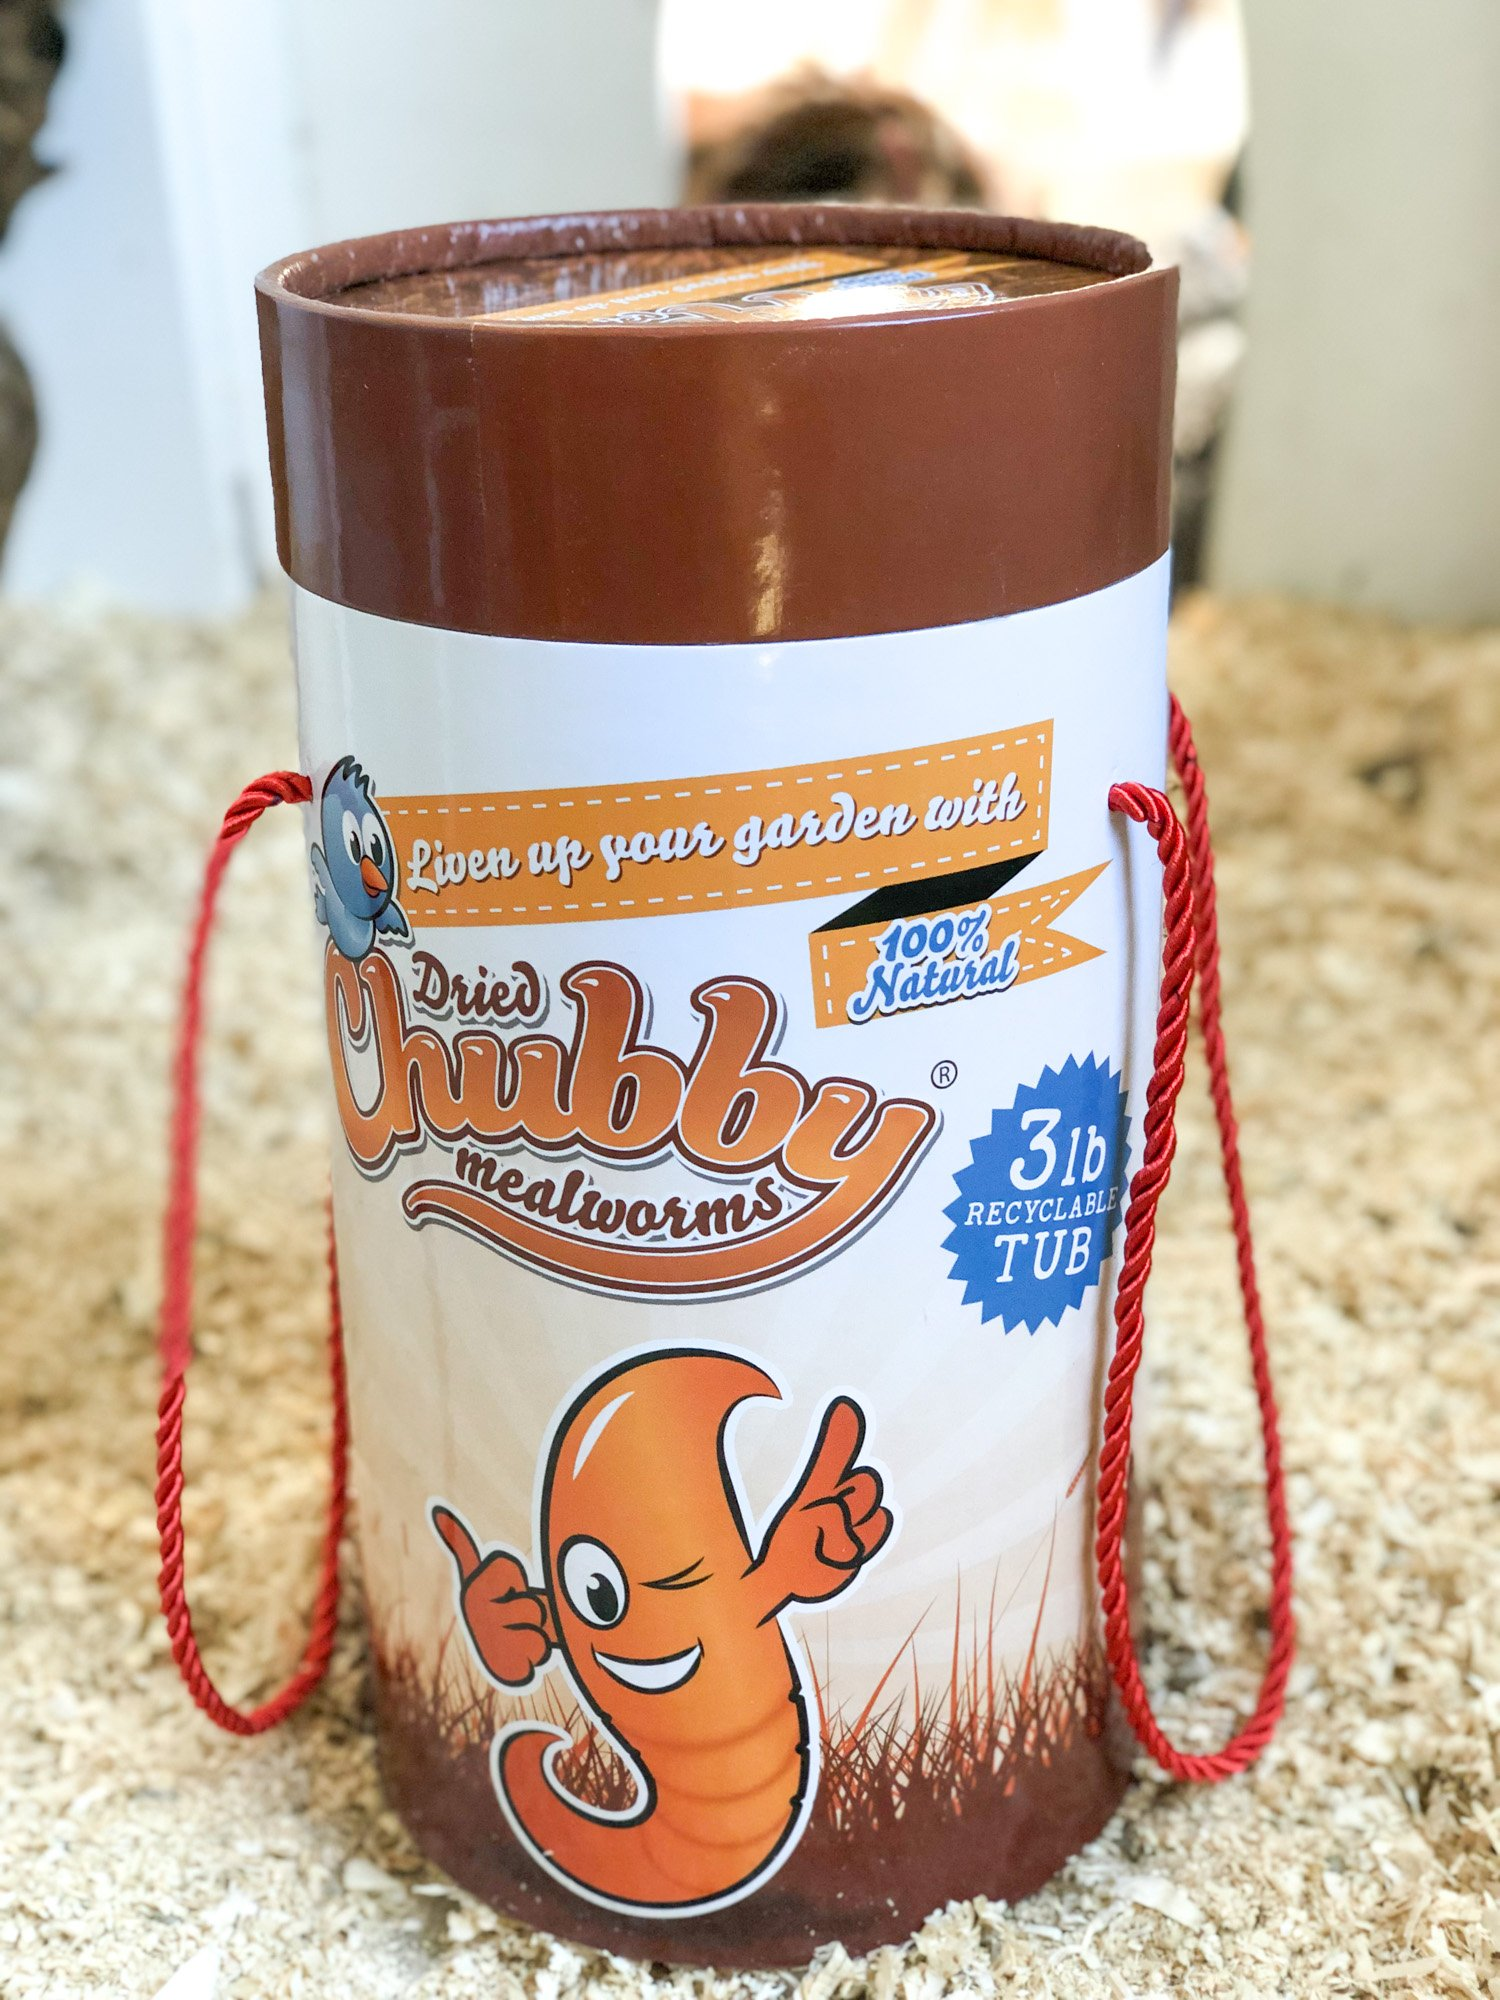 Chubby Mealworms Giveaway